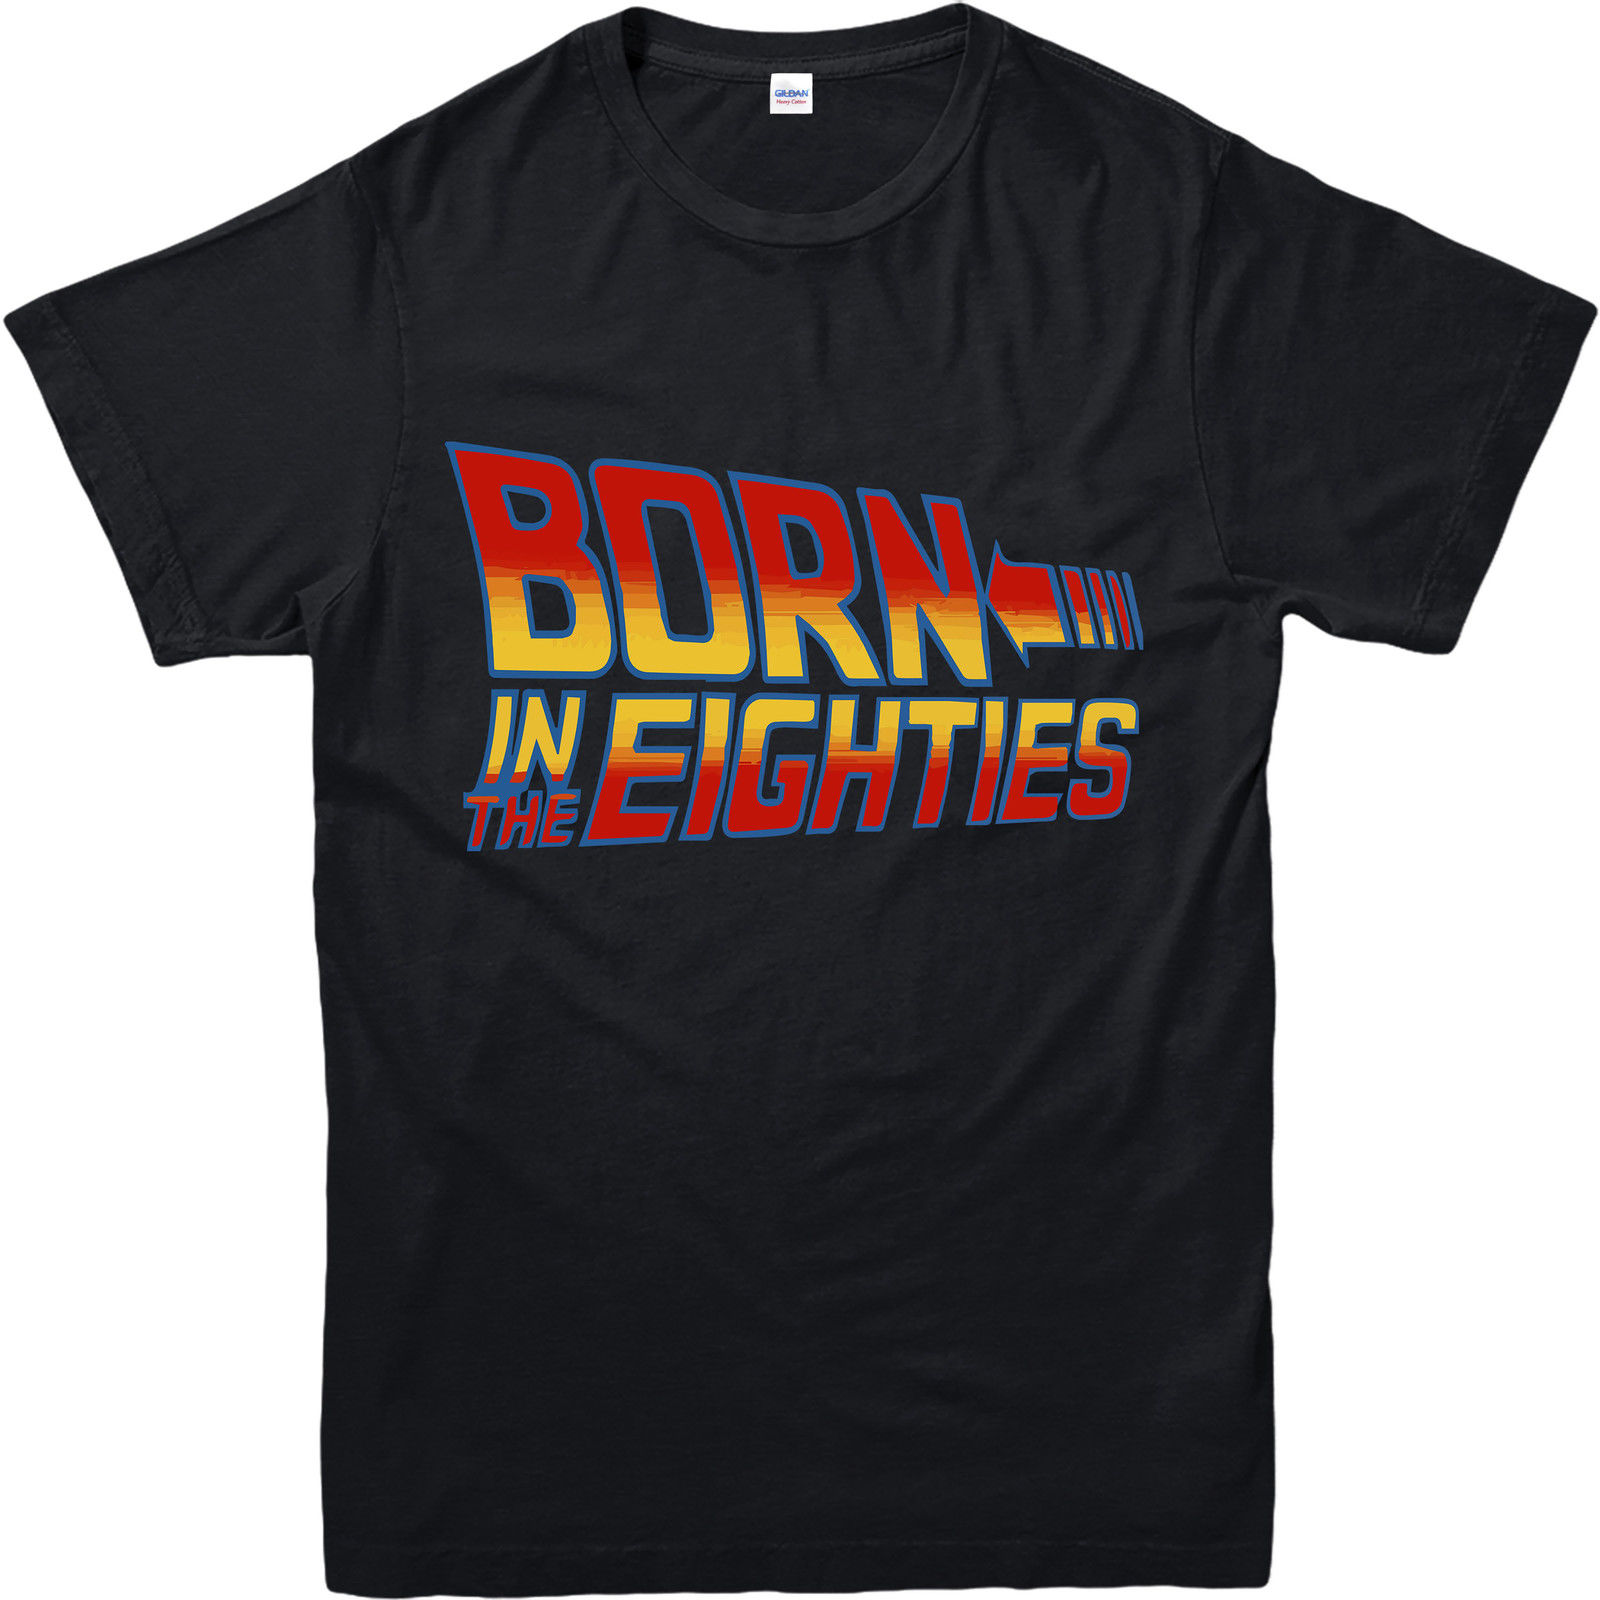 Back To The Future T-Shirt, Born In The Eighties Design T Shirt Inspired Novelty Tops Short Sleeve Tees 2017 Female T Shirt